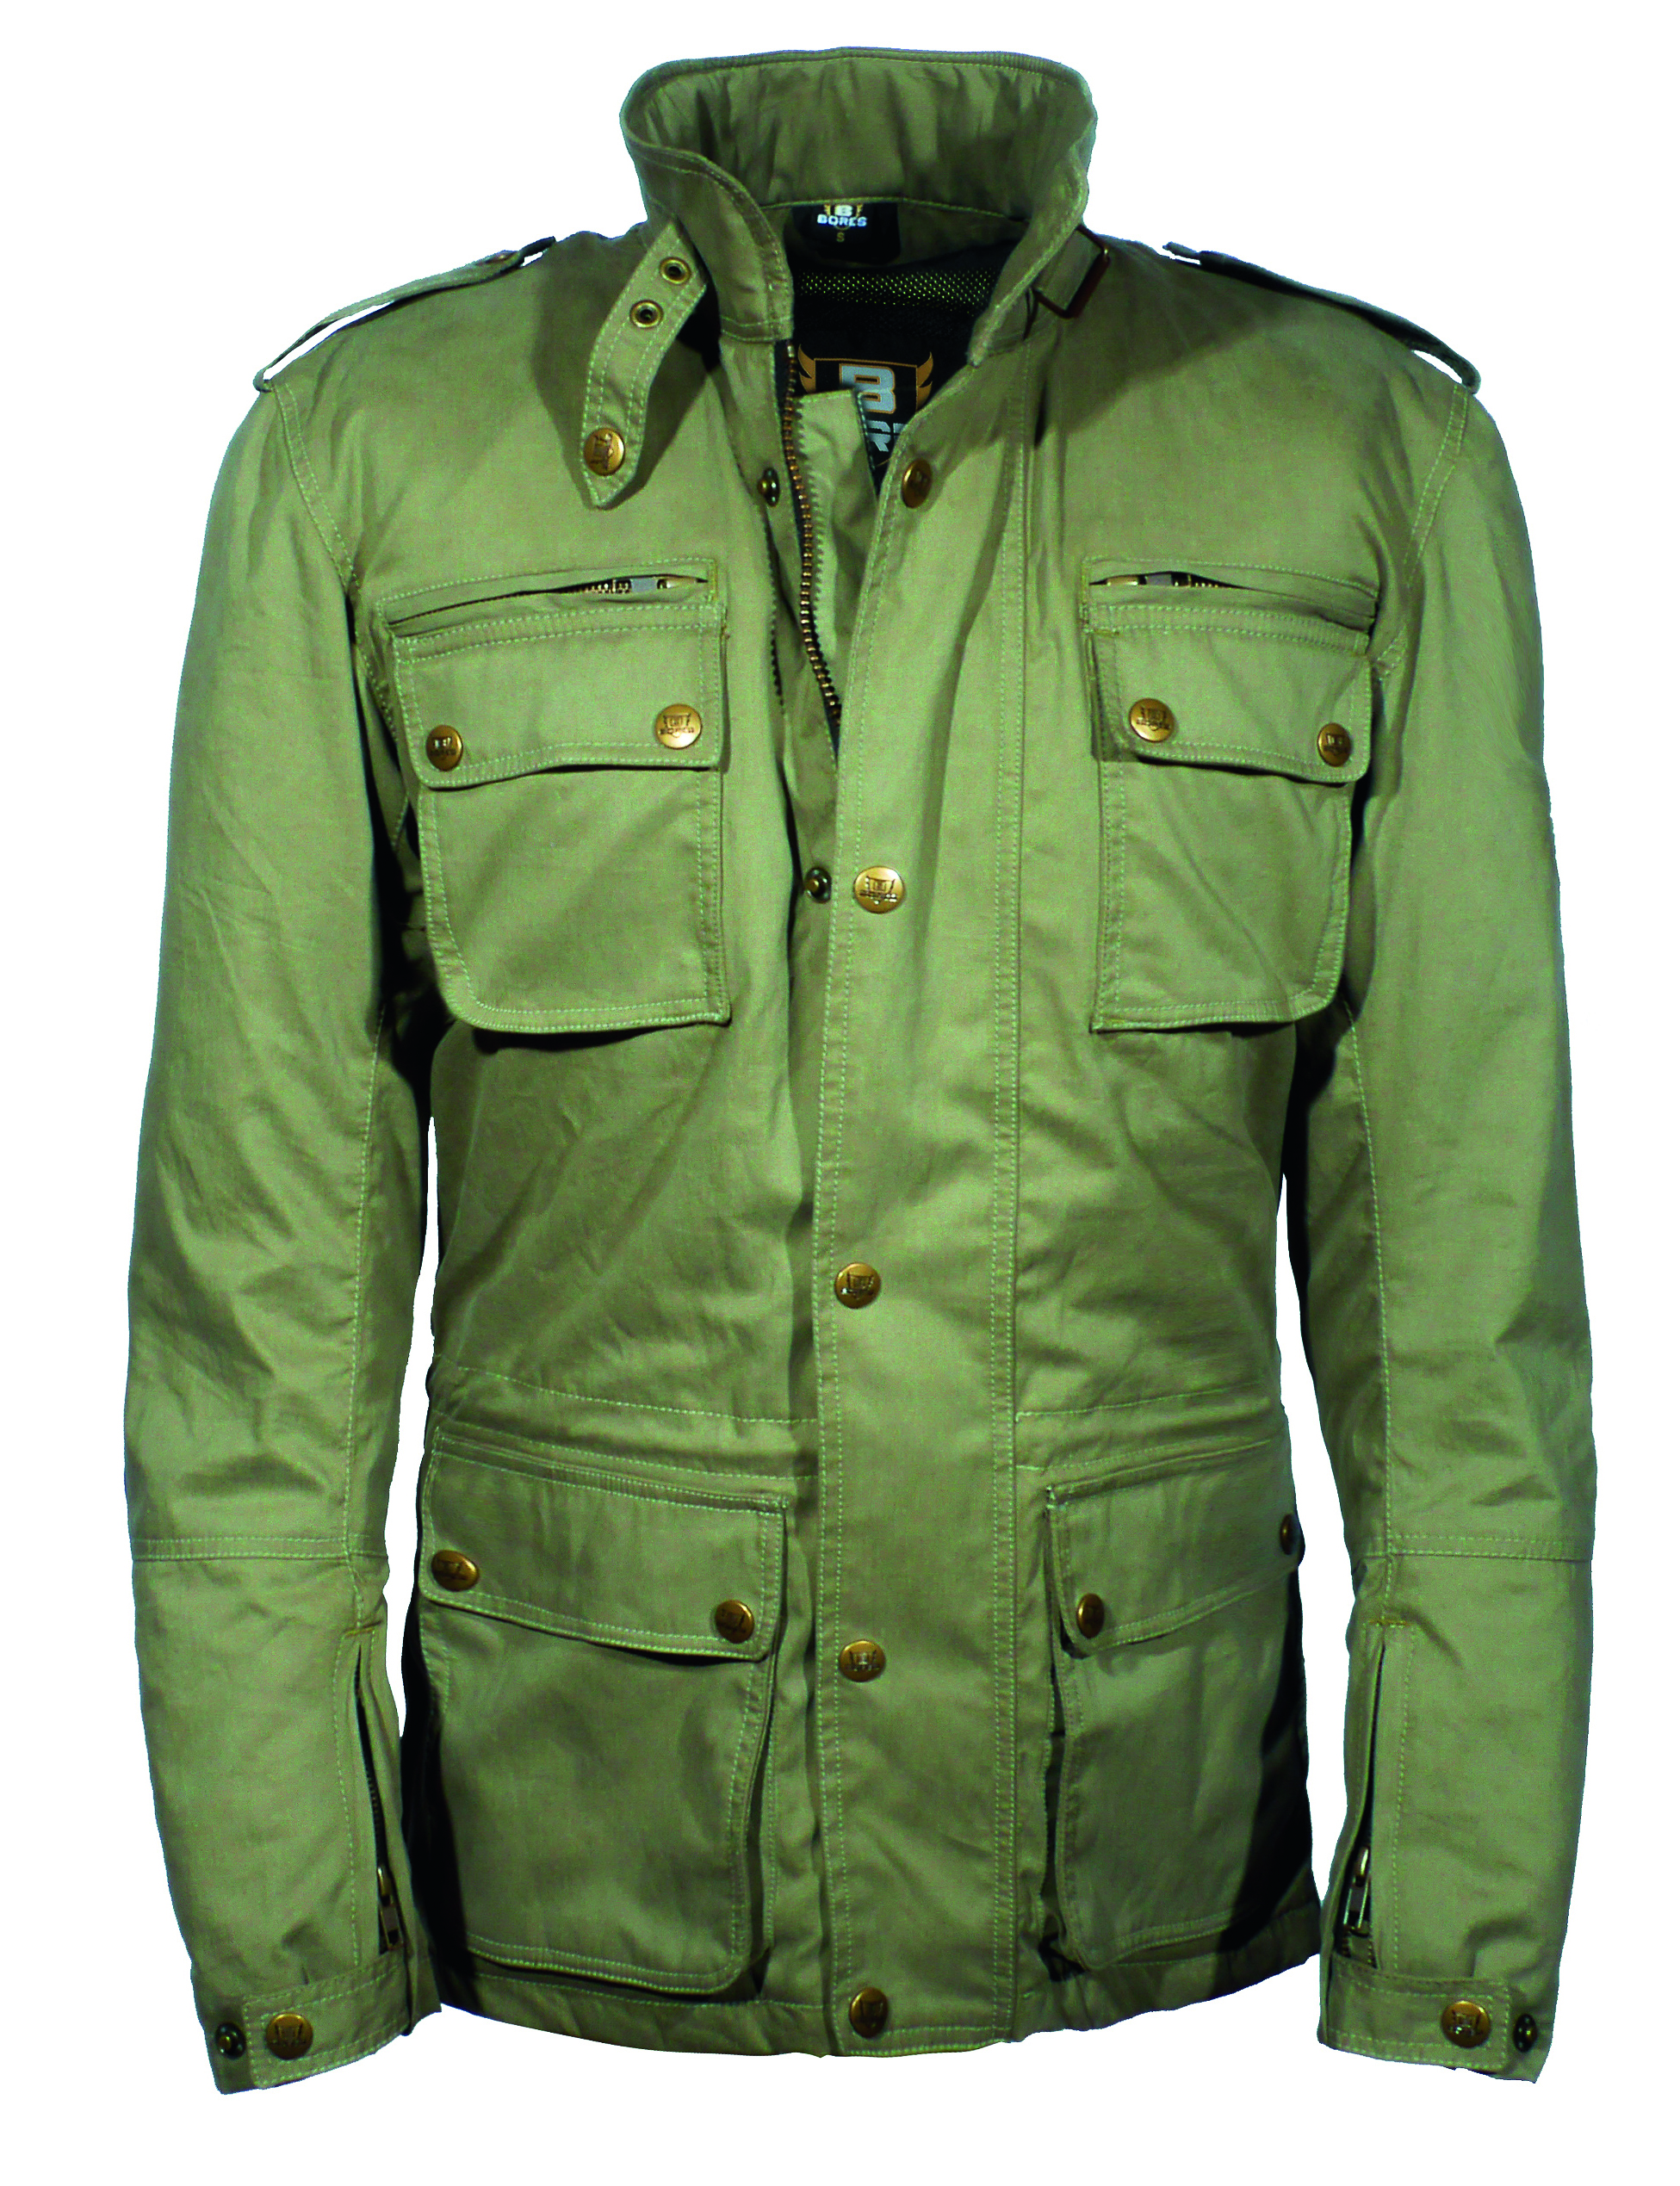 020-0051_B69_FRONT_olive